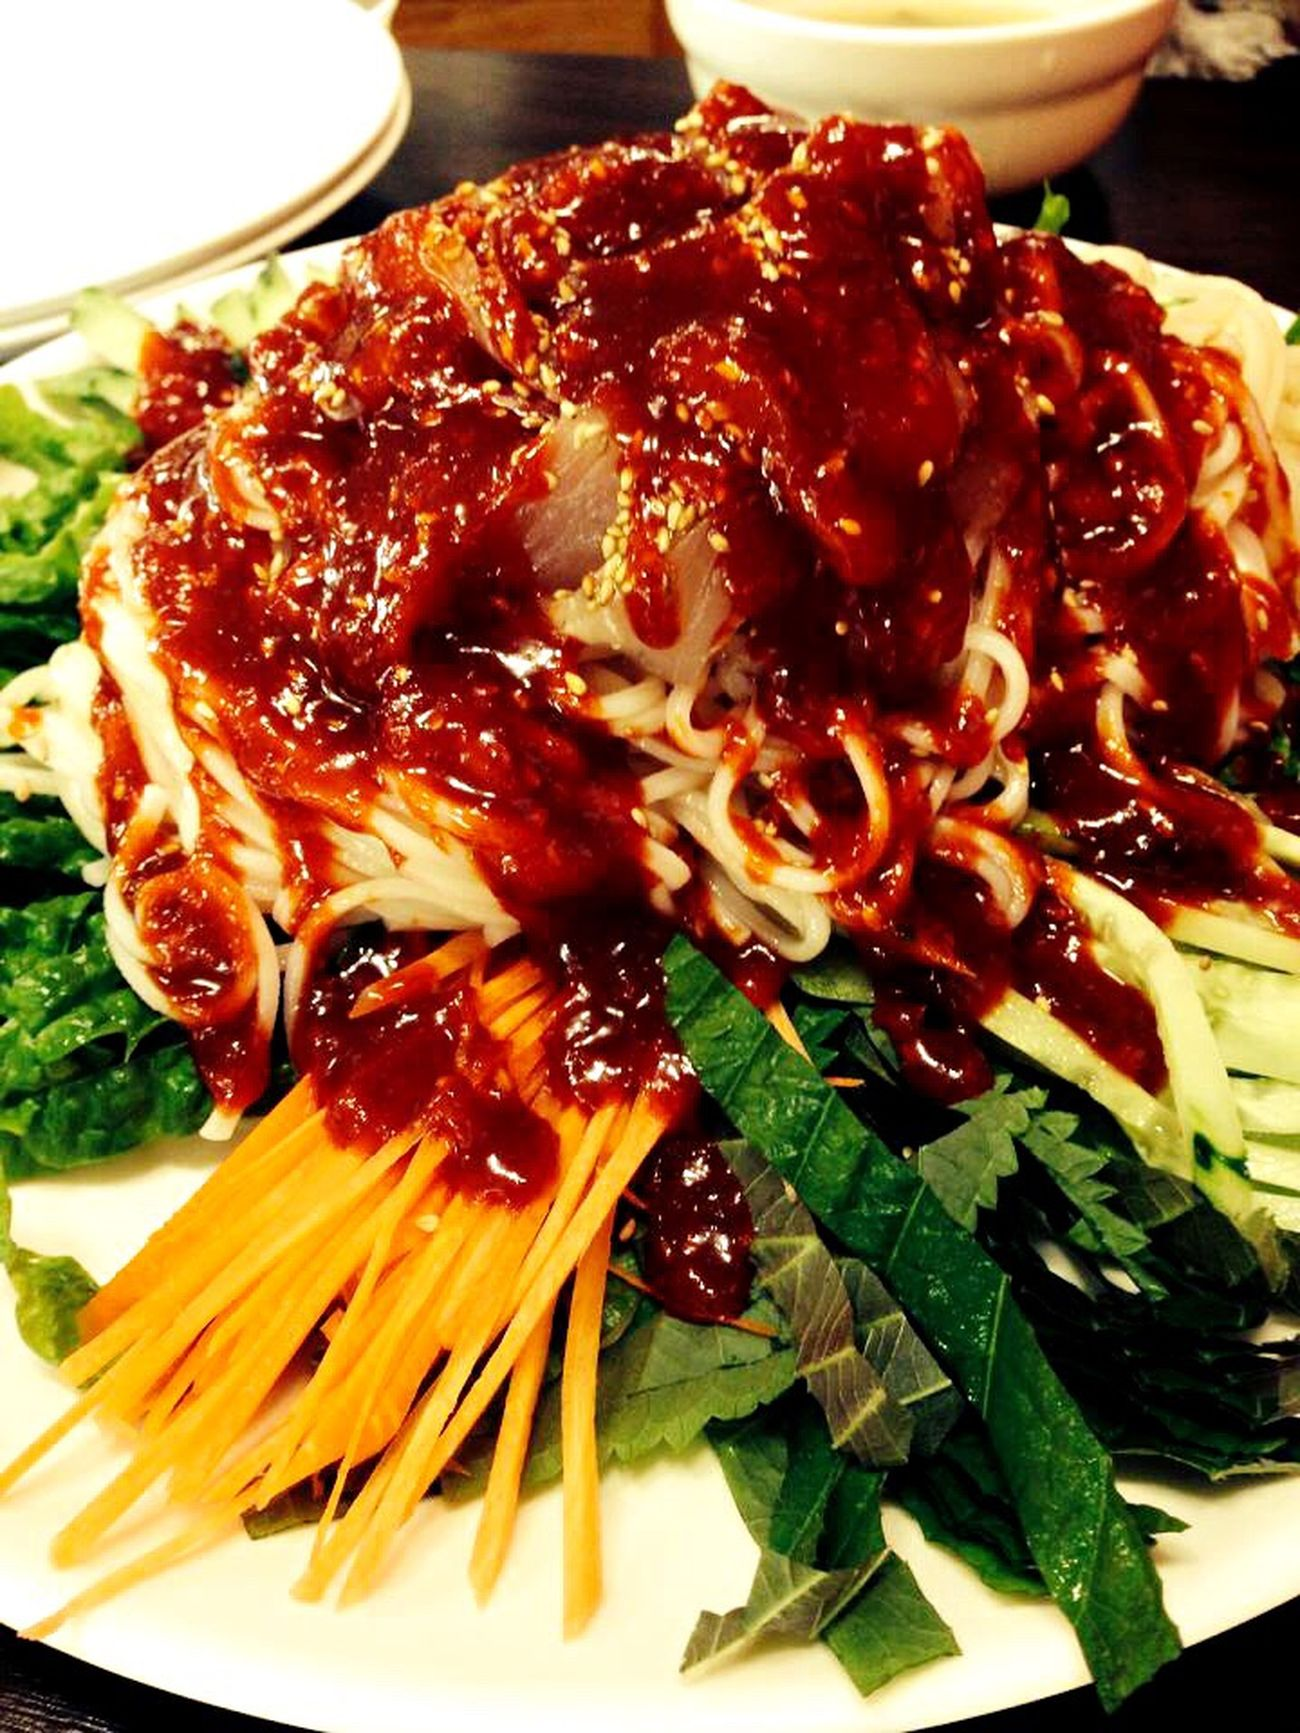 Noodles Sashimi  Noodle With Sliced Raw Fish Delicious Yummy Bibim Noodles Korean Food Food Foodporn Spicy Food Hello World Localfood Udo Enjoying Life Hello World Taking Photos IPhoneography Mobilephotography